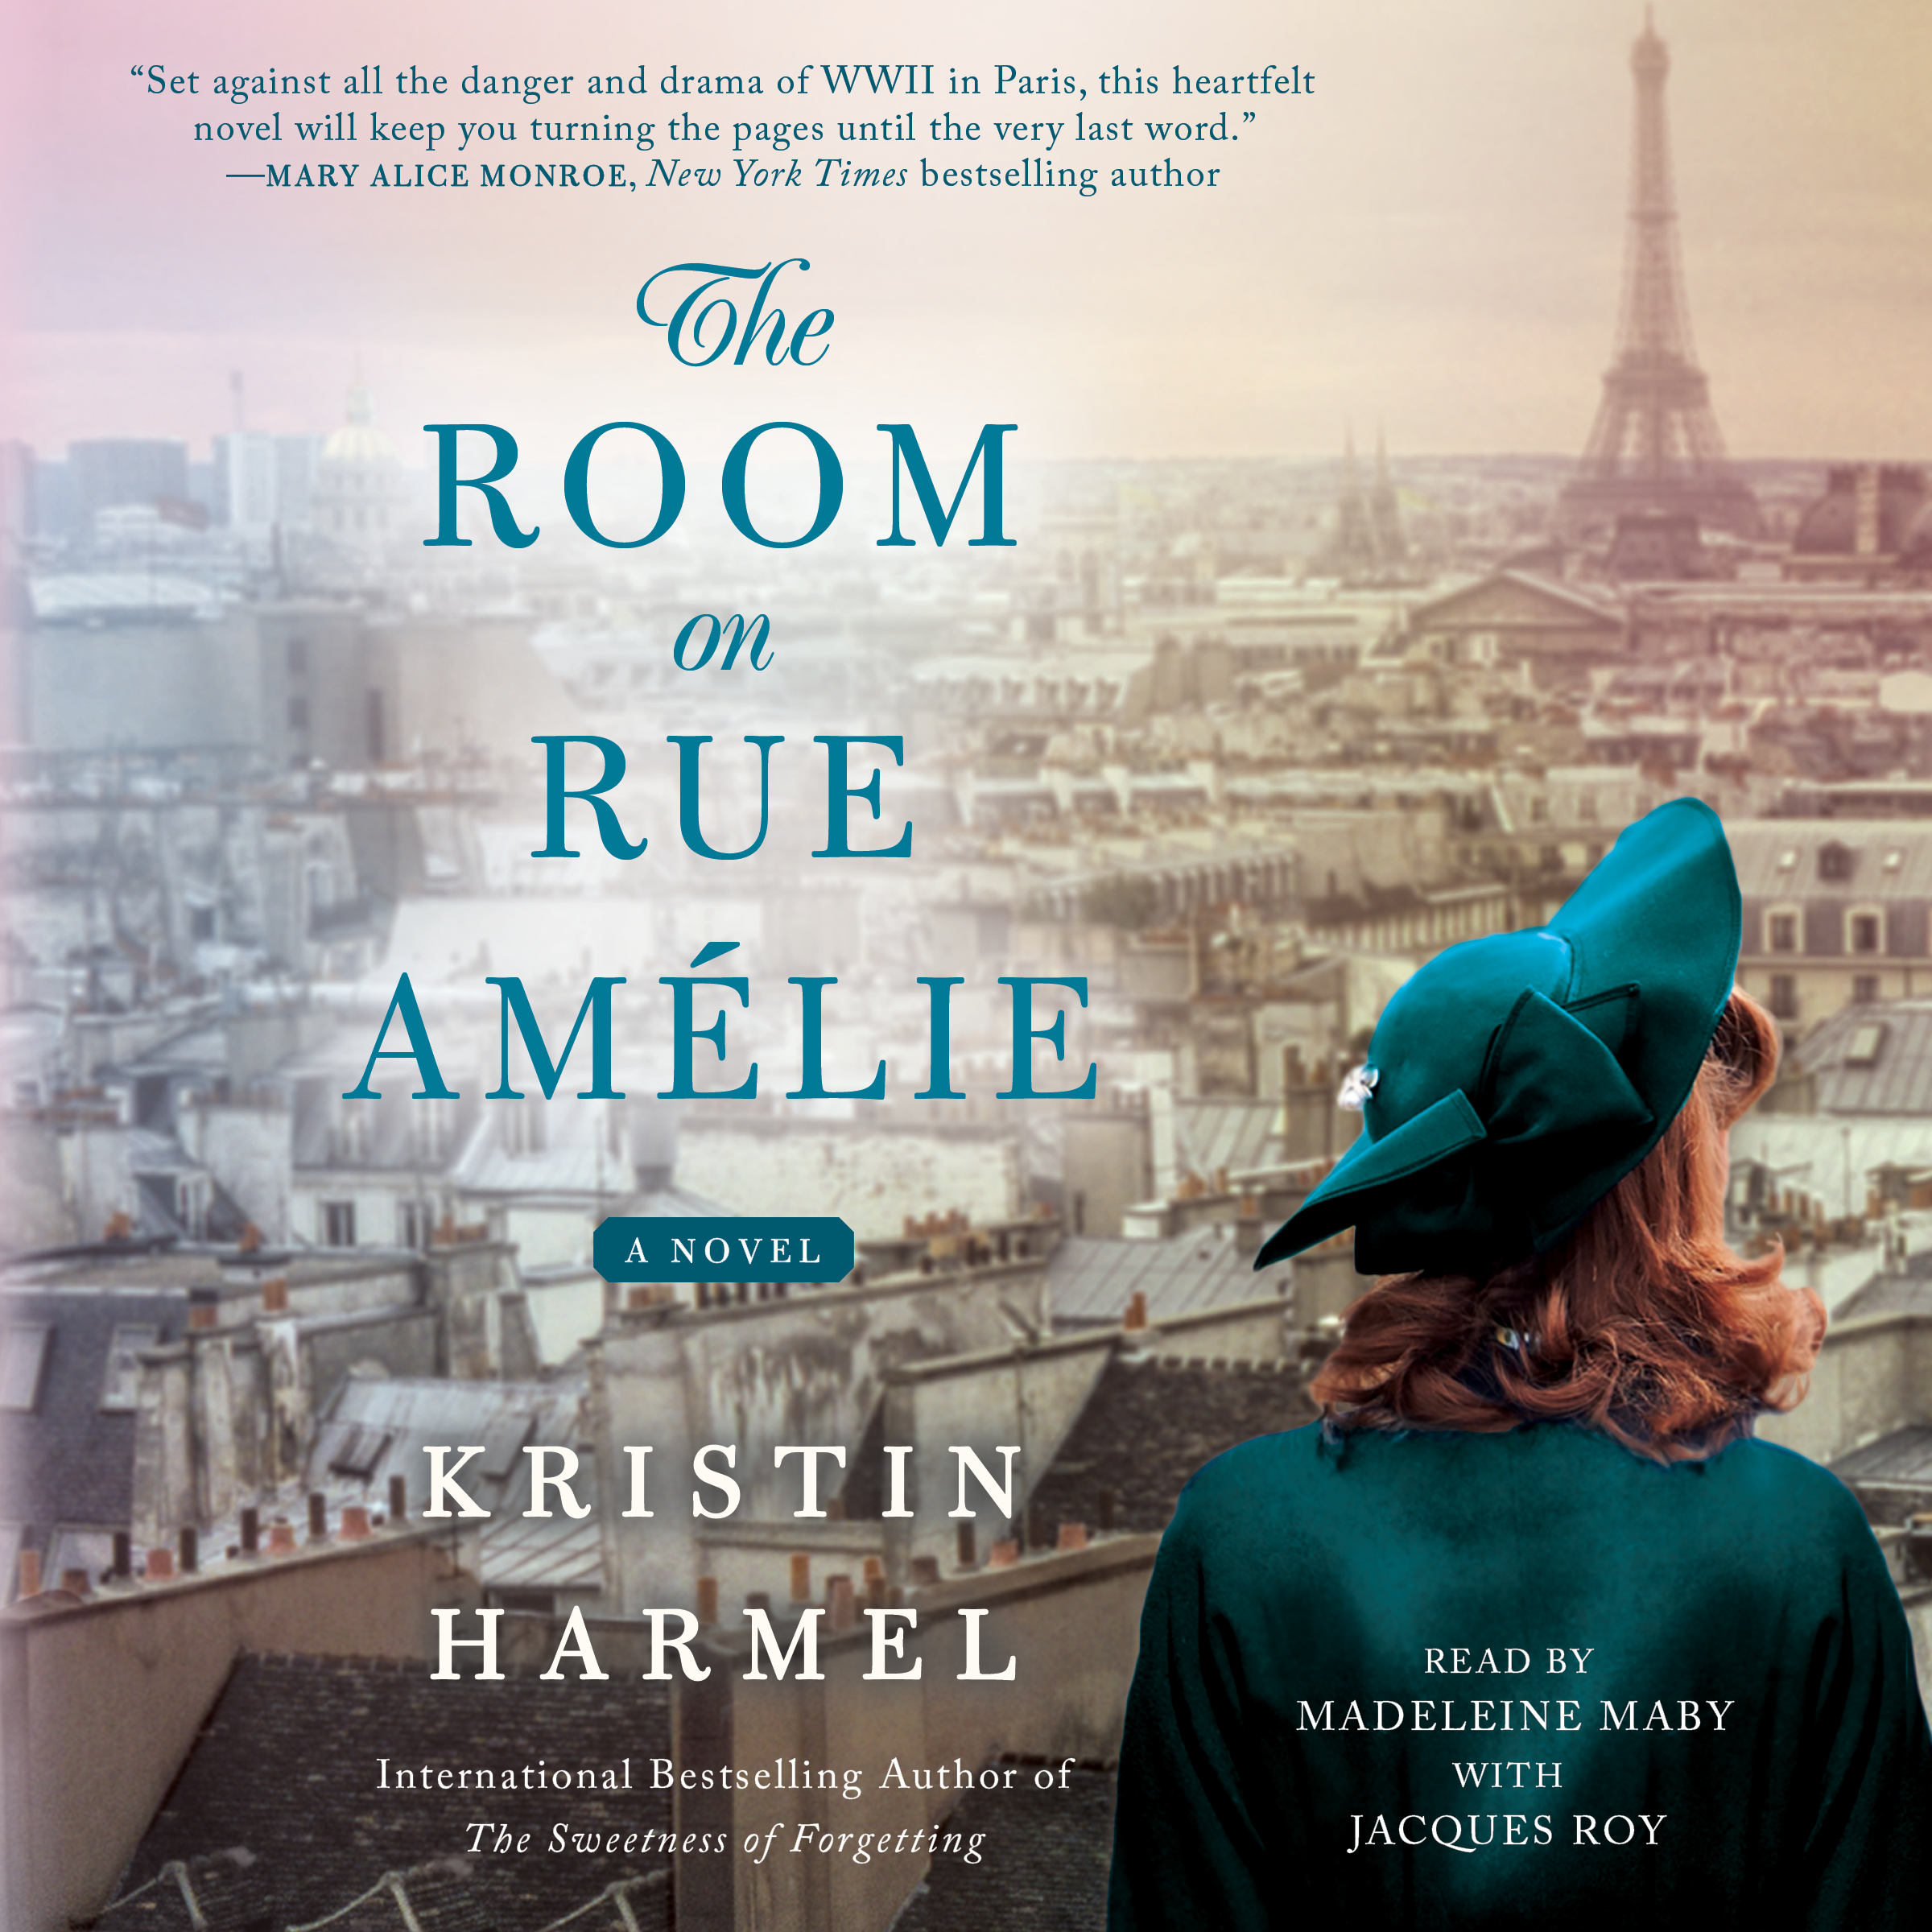 The room on rue amelie 9781508254744 hr